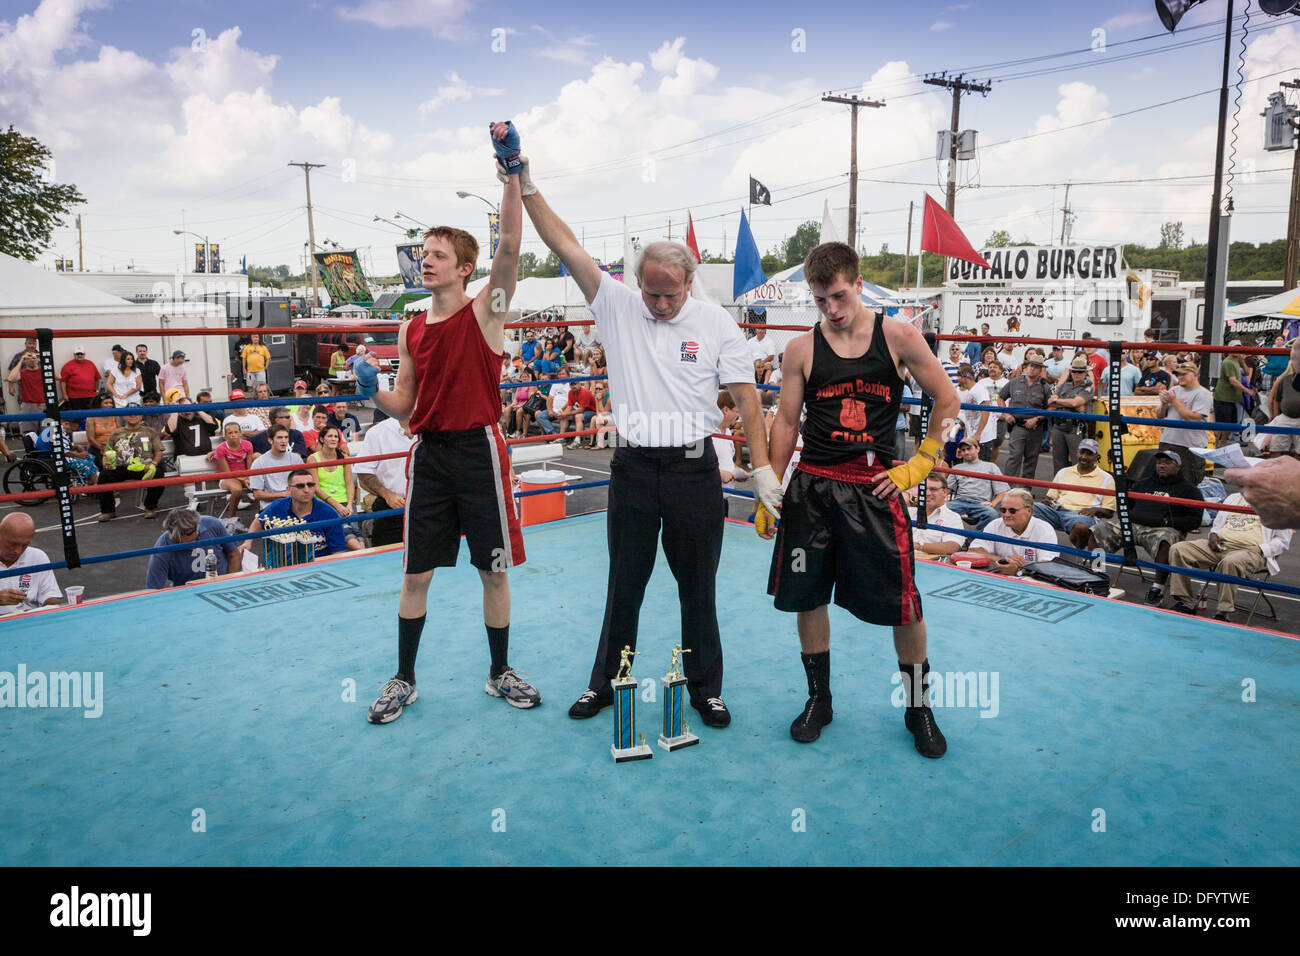 Winner announced, boy's boxing match, Great New York State Fair, Syracuse. - Stock Image